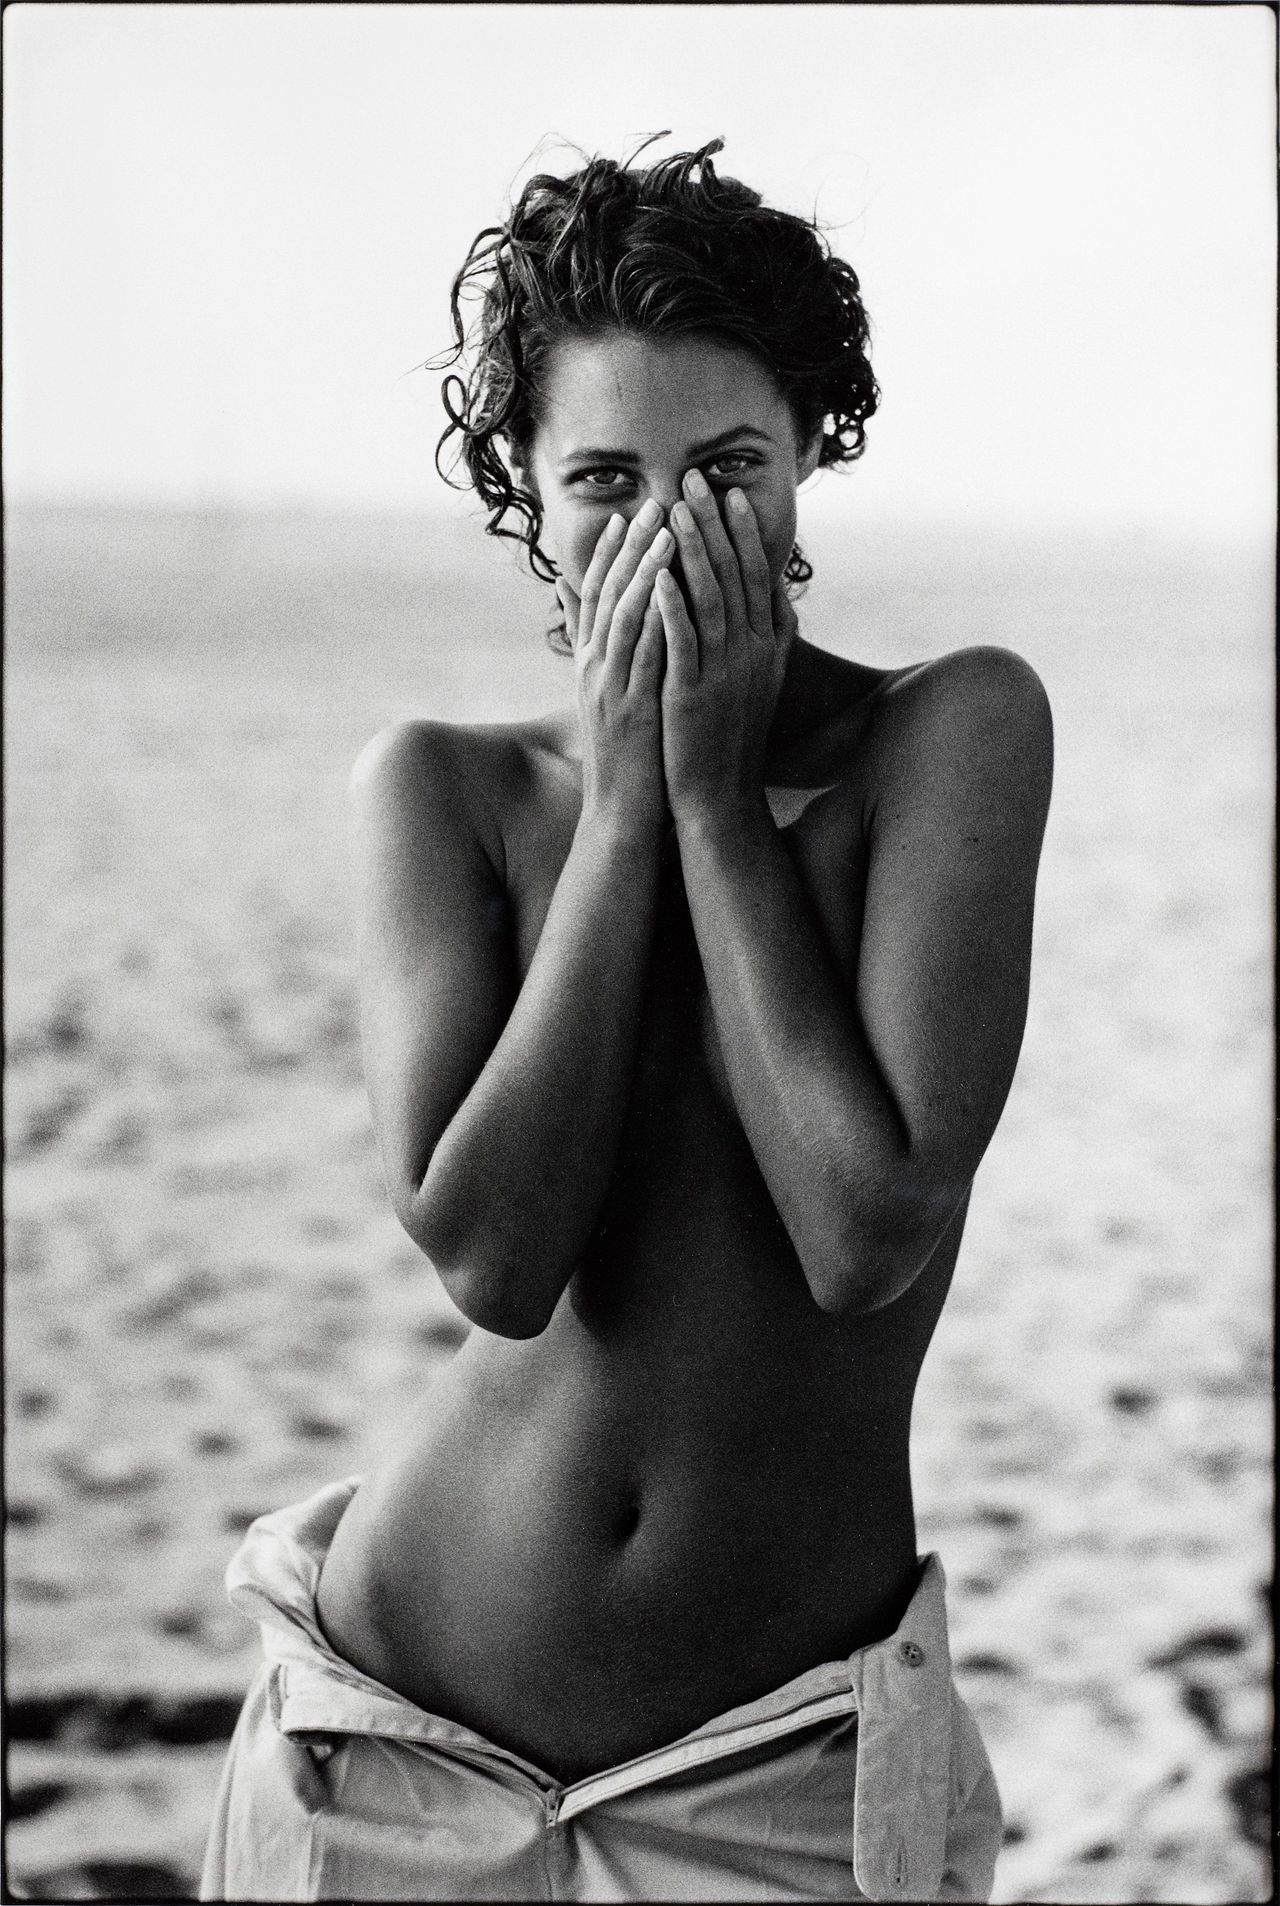 Christy Turlington x Peter Lindbergh